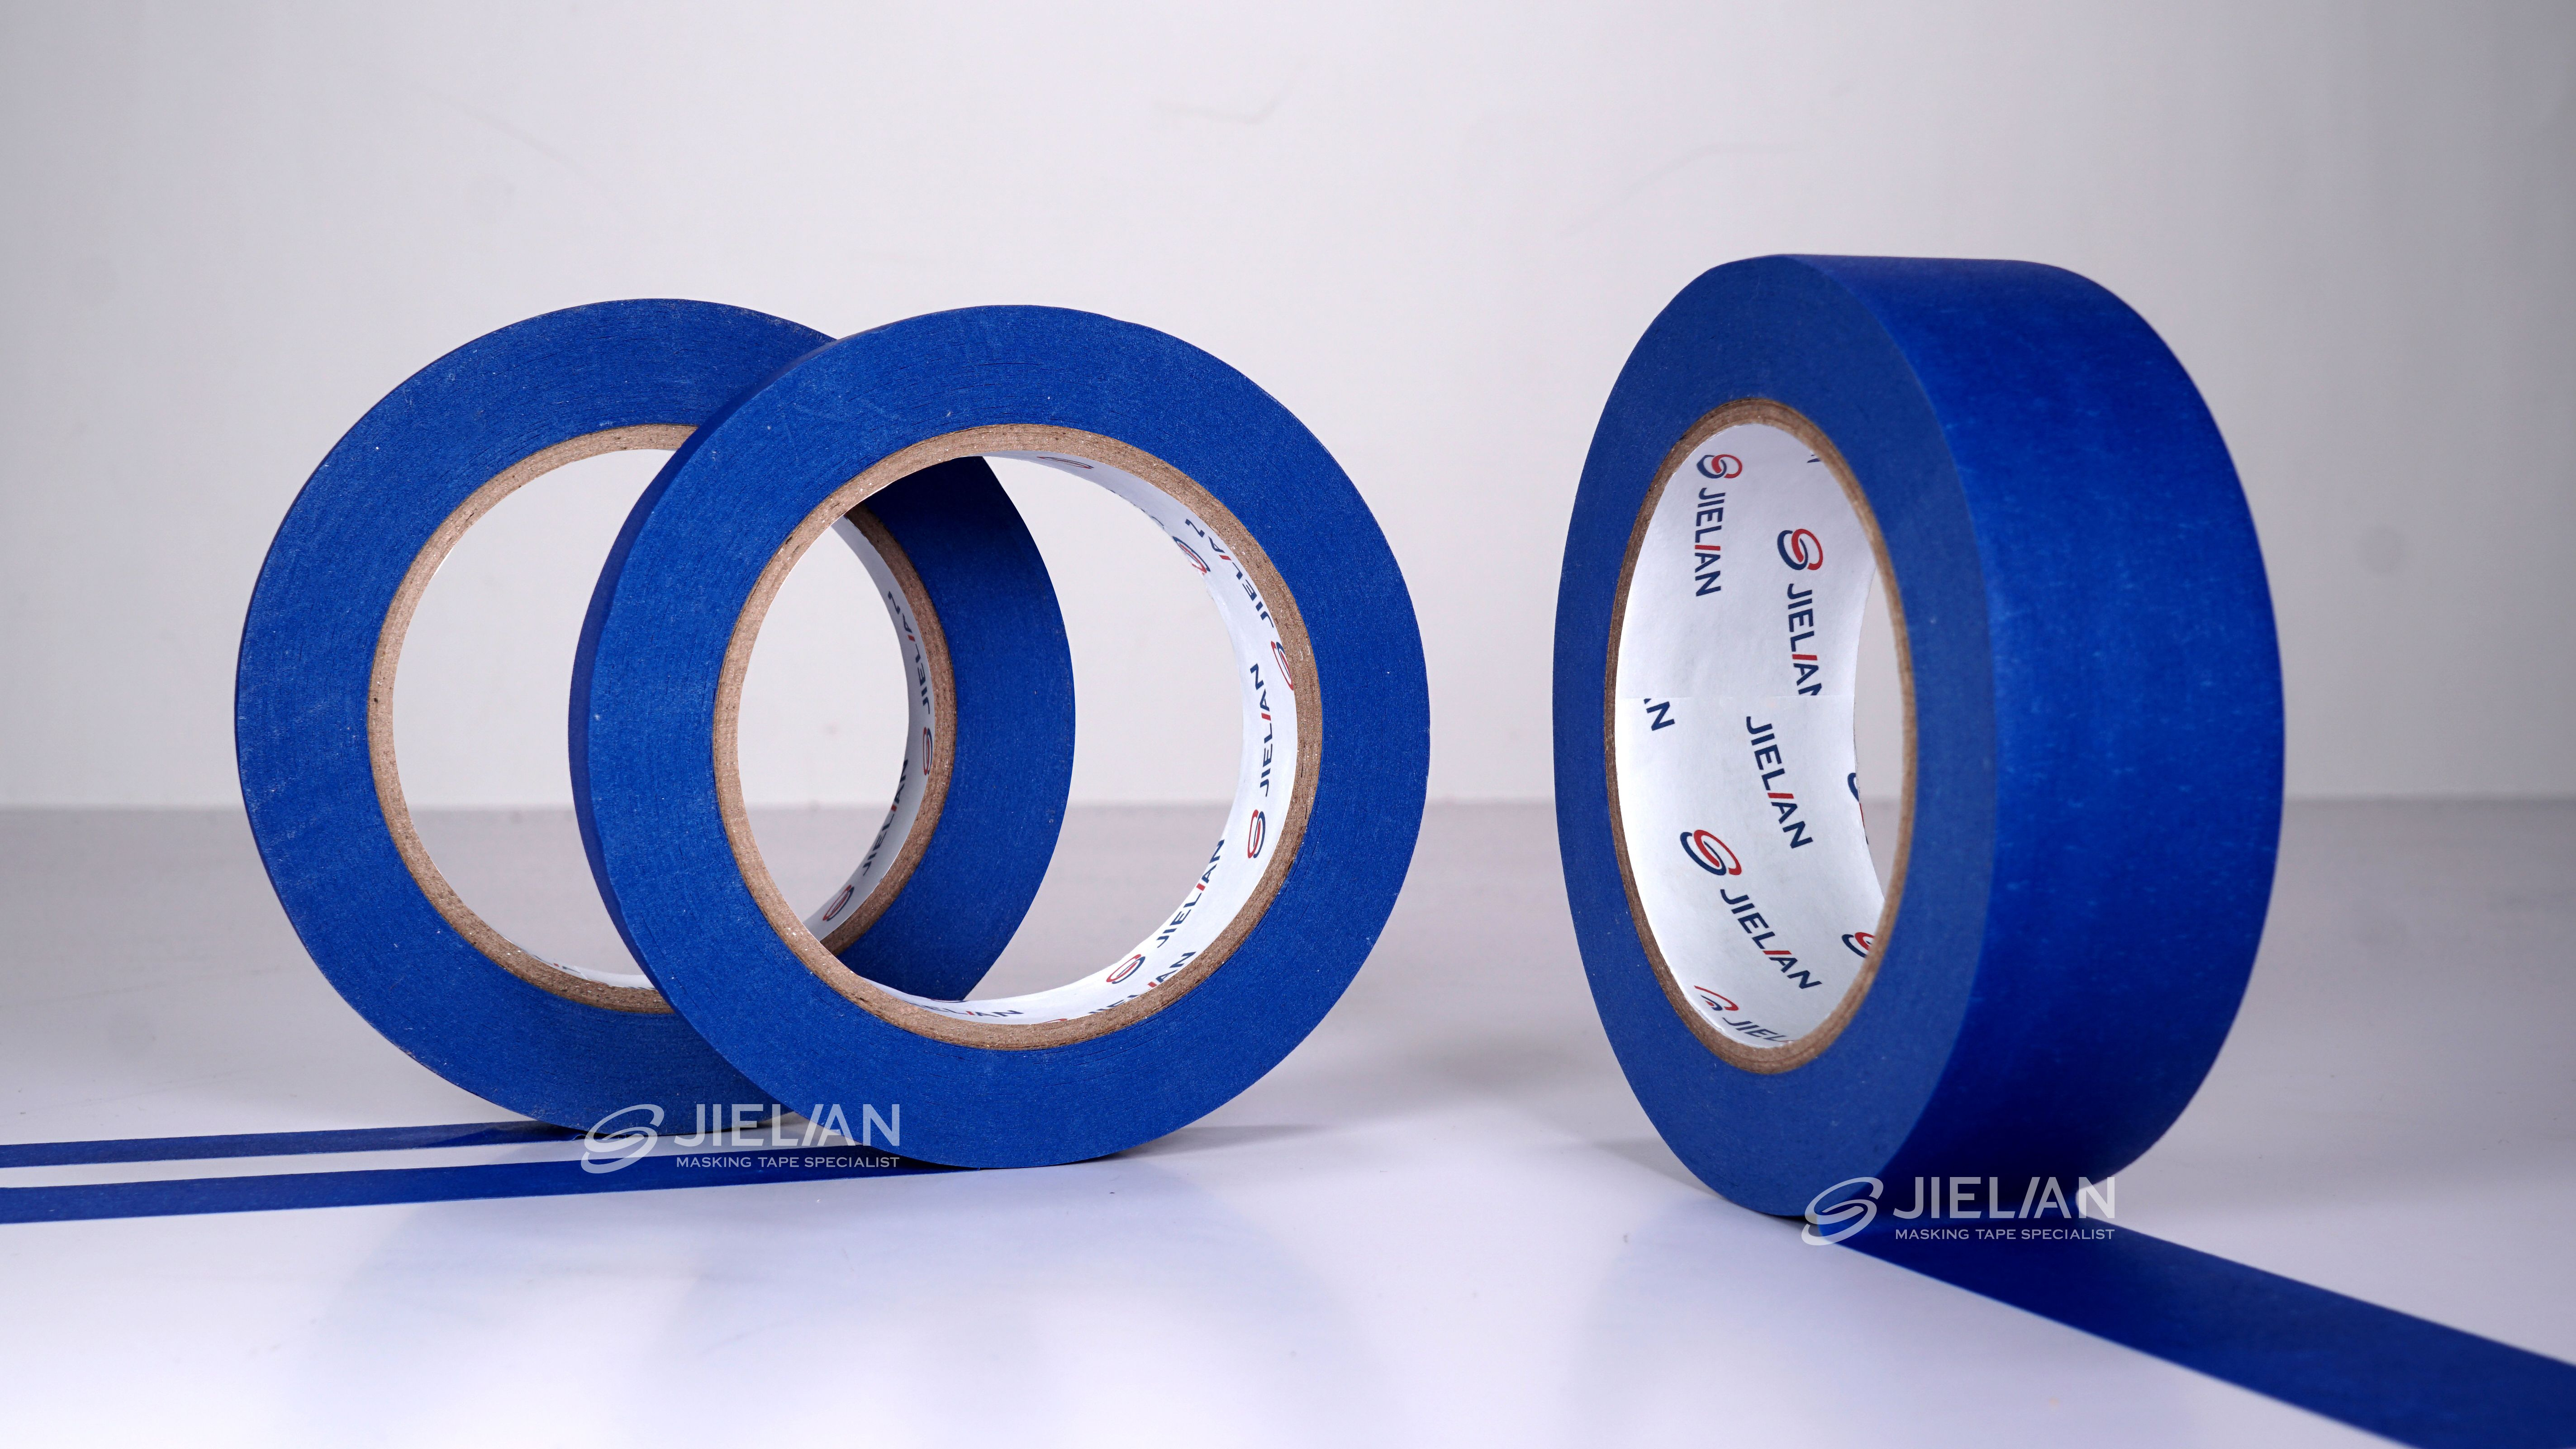 Outstanding Outdoor Painting Masking Tape MT663B with 14 Days UV Resistance